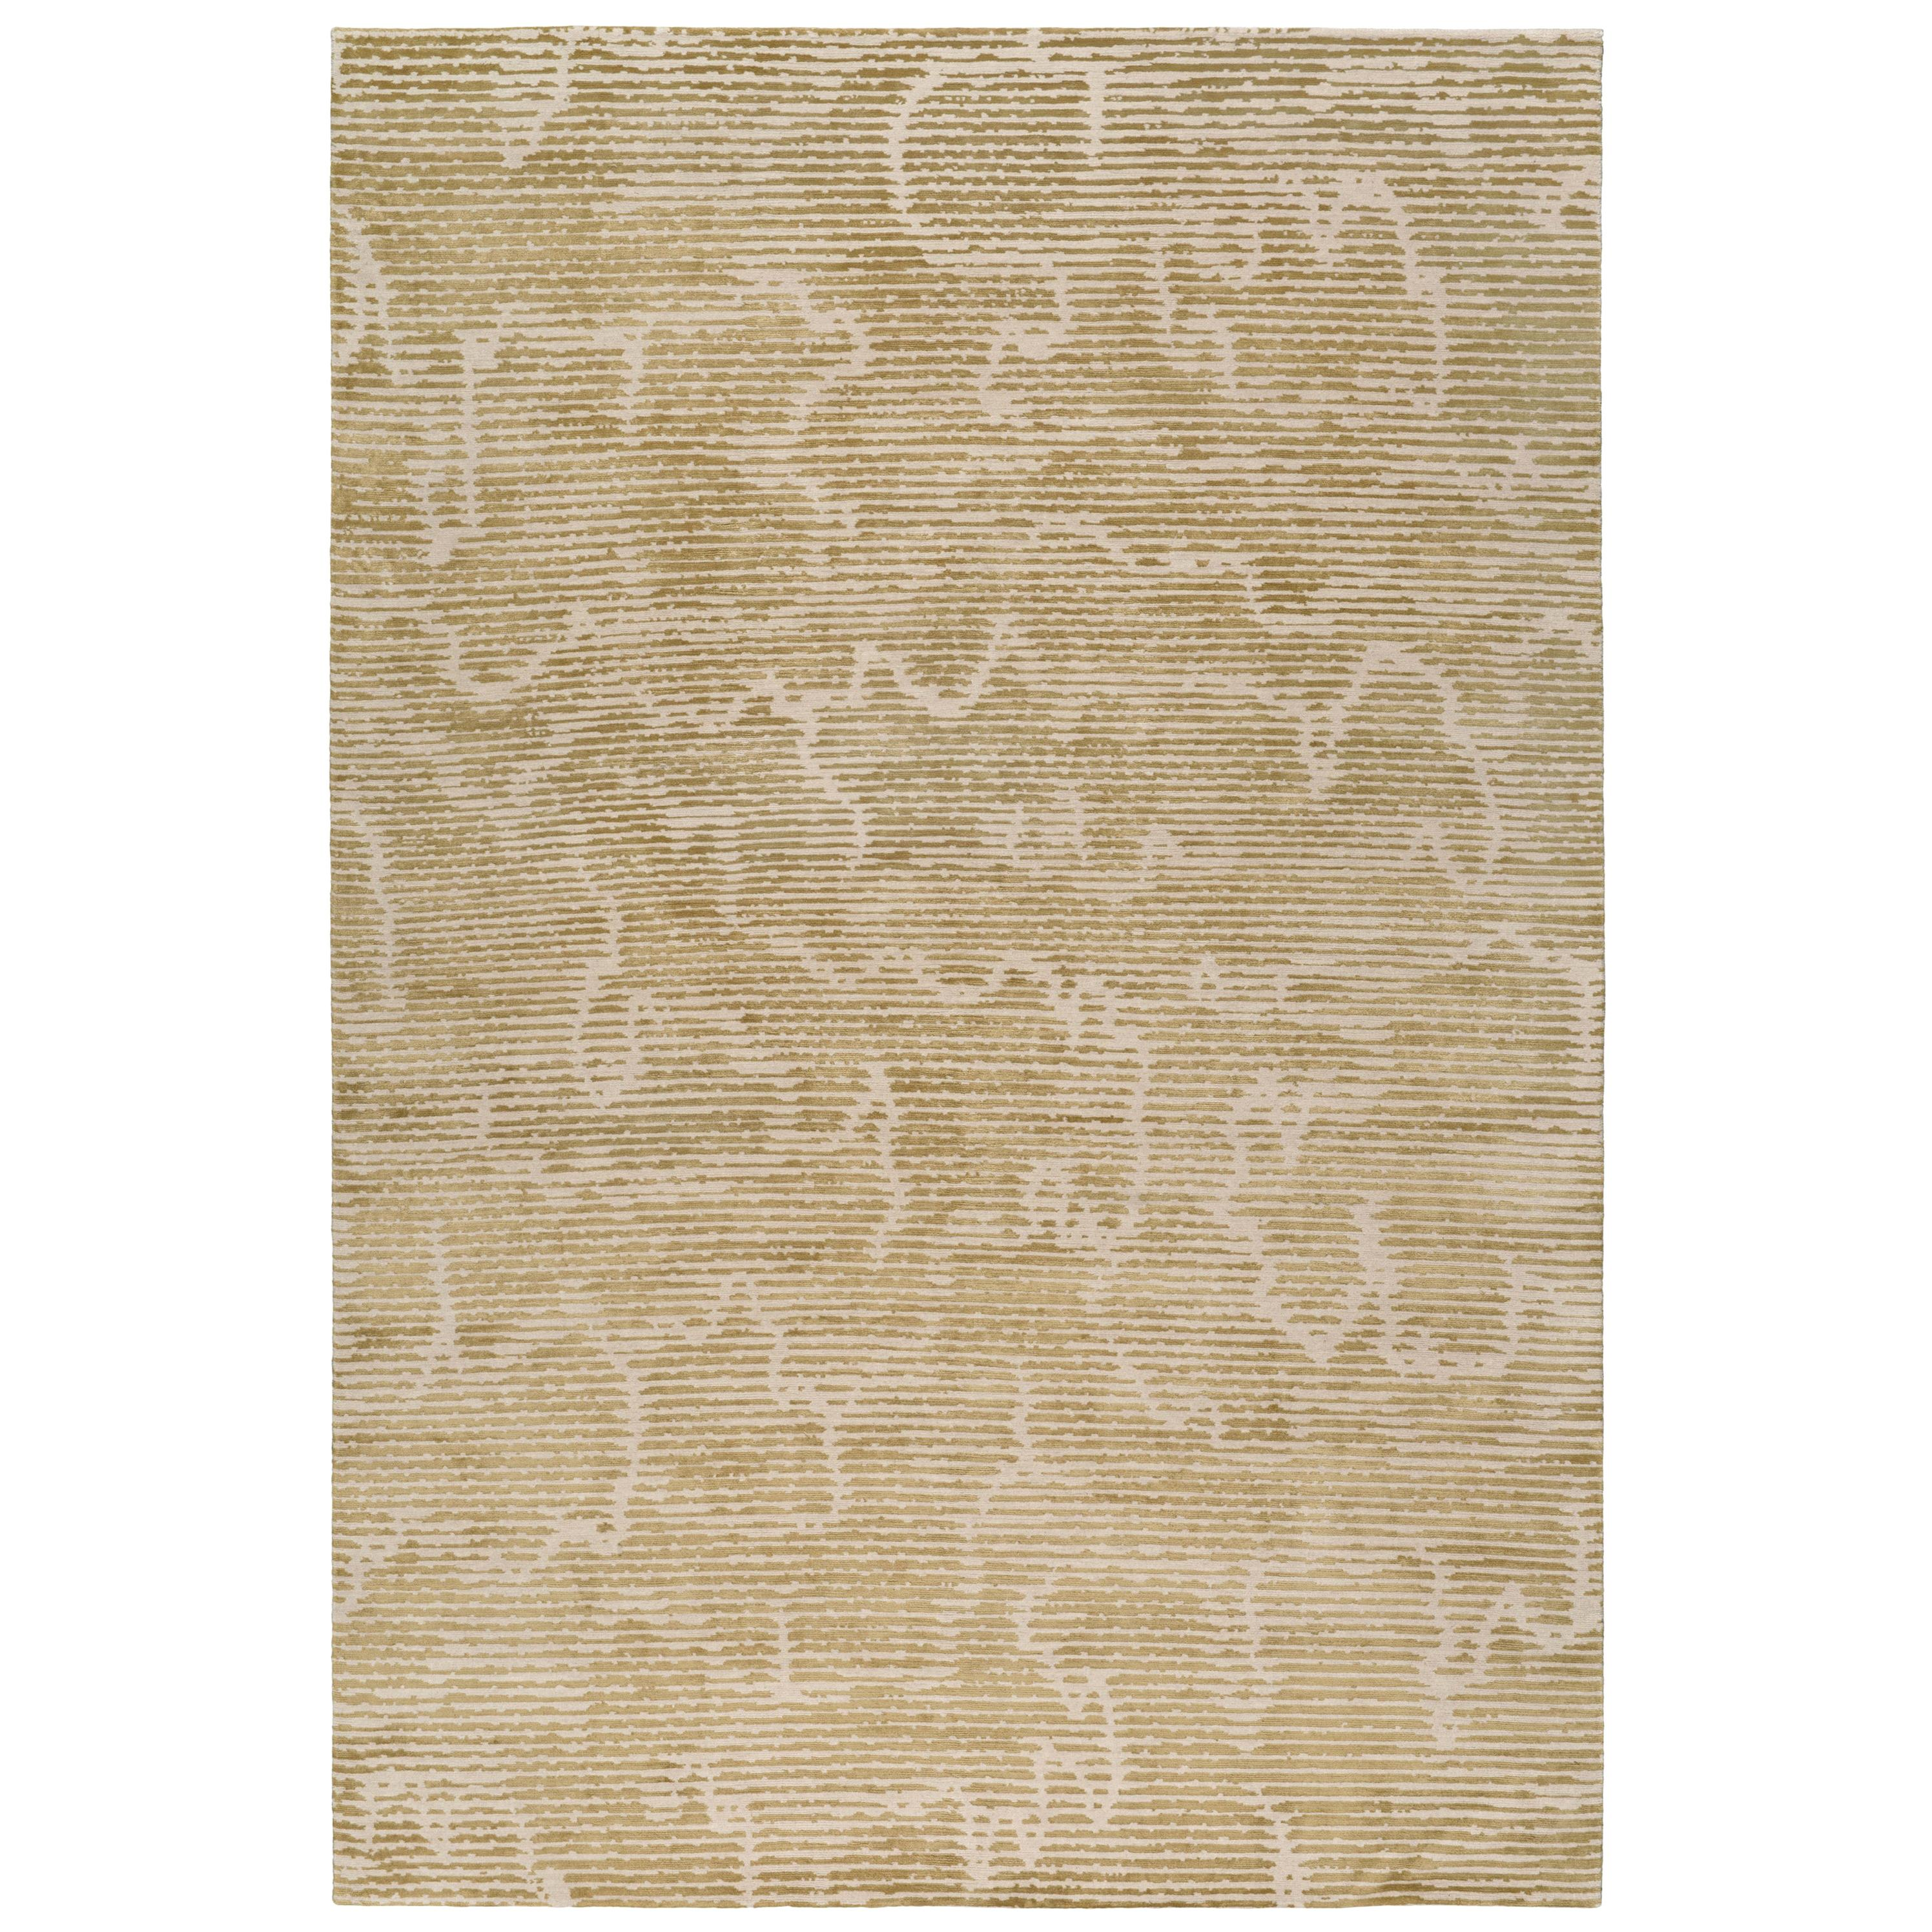 Staccato Hand Knotted 10x8 Rug in Wool and Silk by Kelly Wearstler